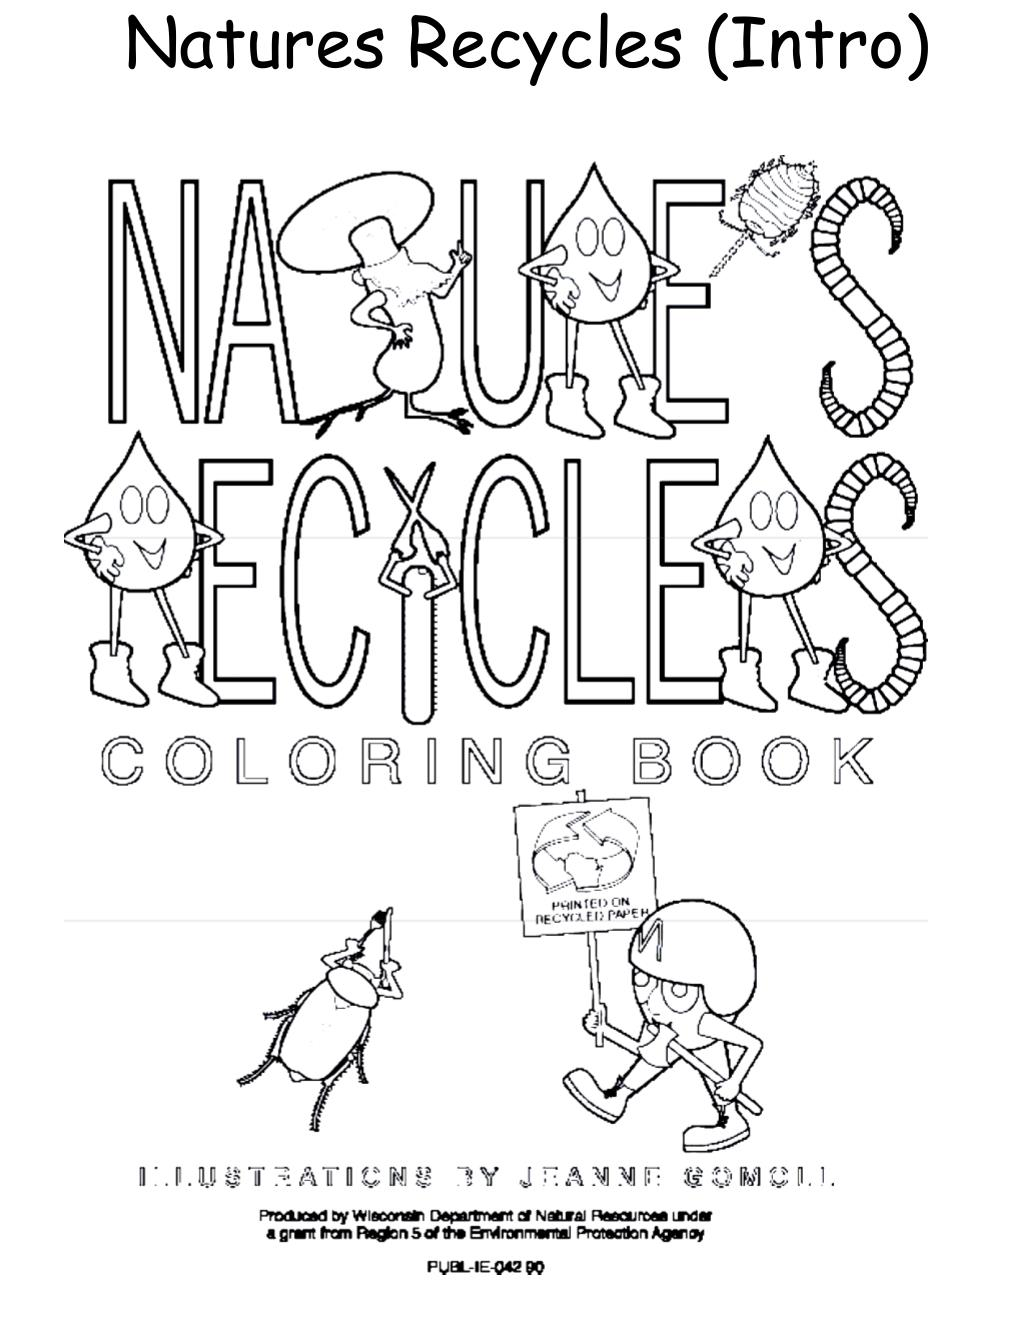 Natures Recycles (Intro)